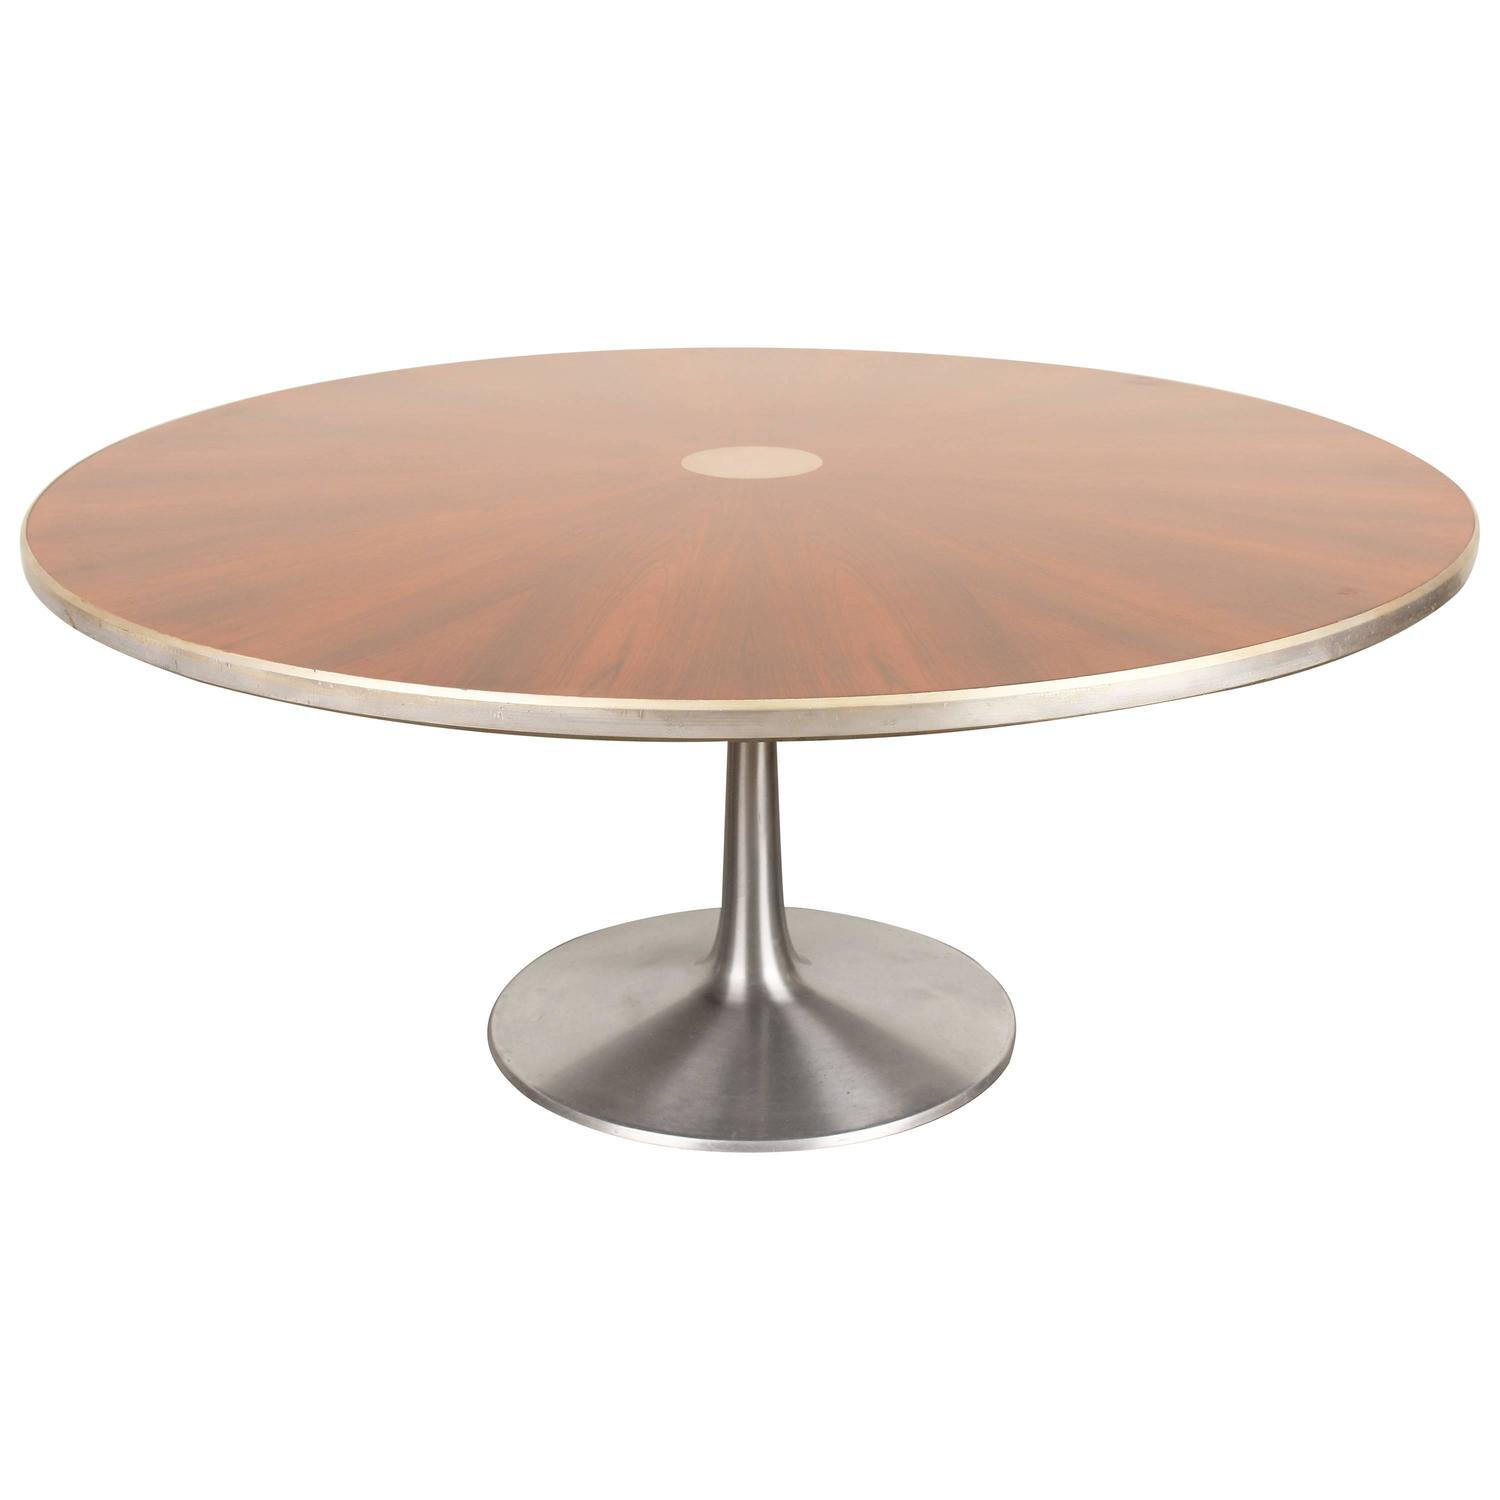 Round Rosewood Dining Table With Pedestal Base By Poul